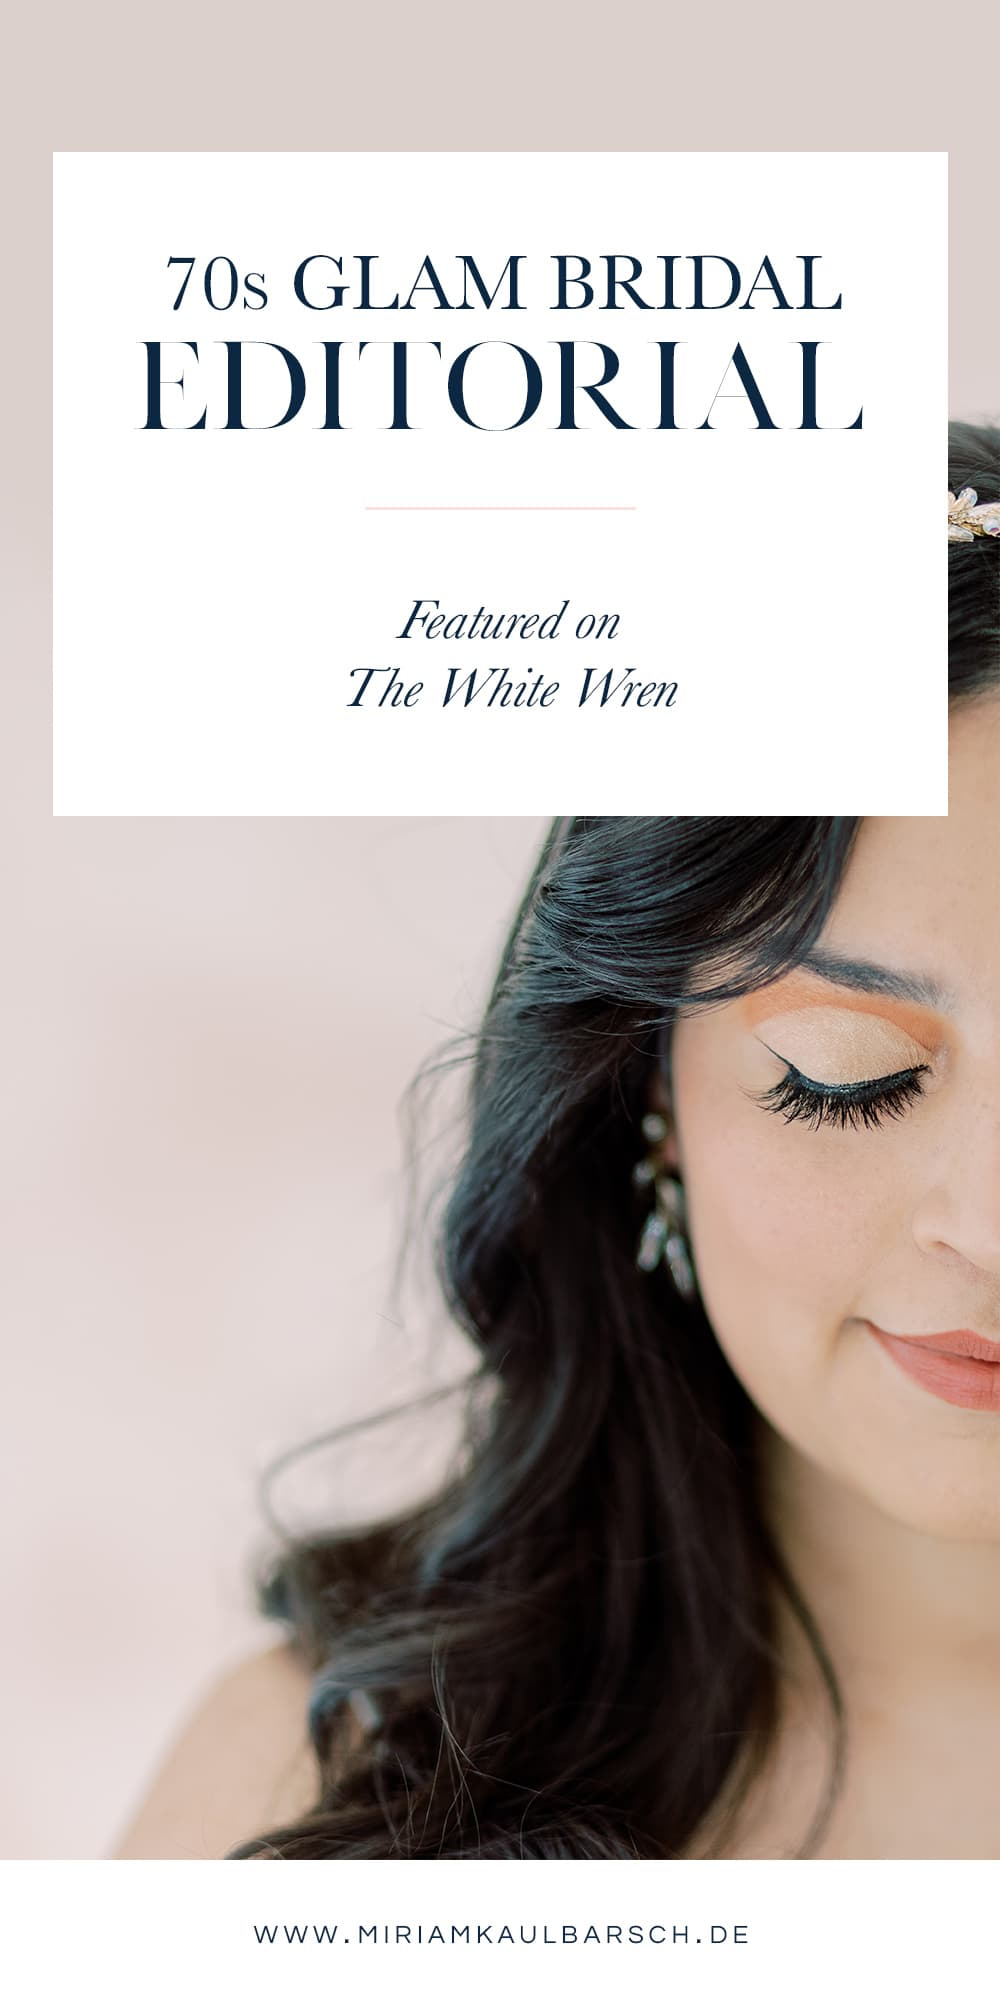 70s Glam Bridal Editorial - Featured on The White Wren